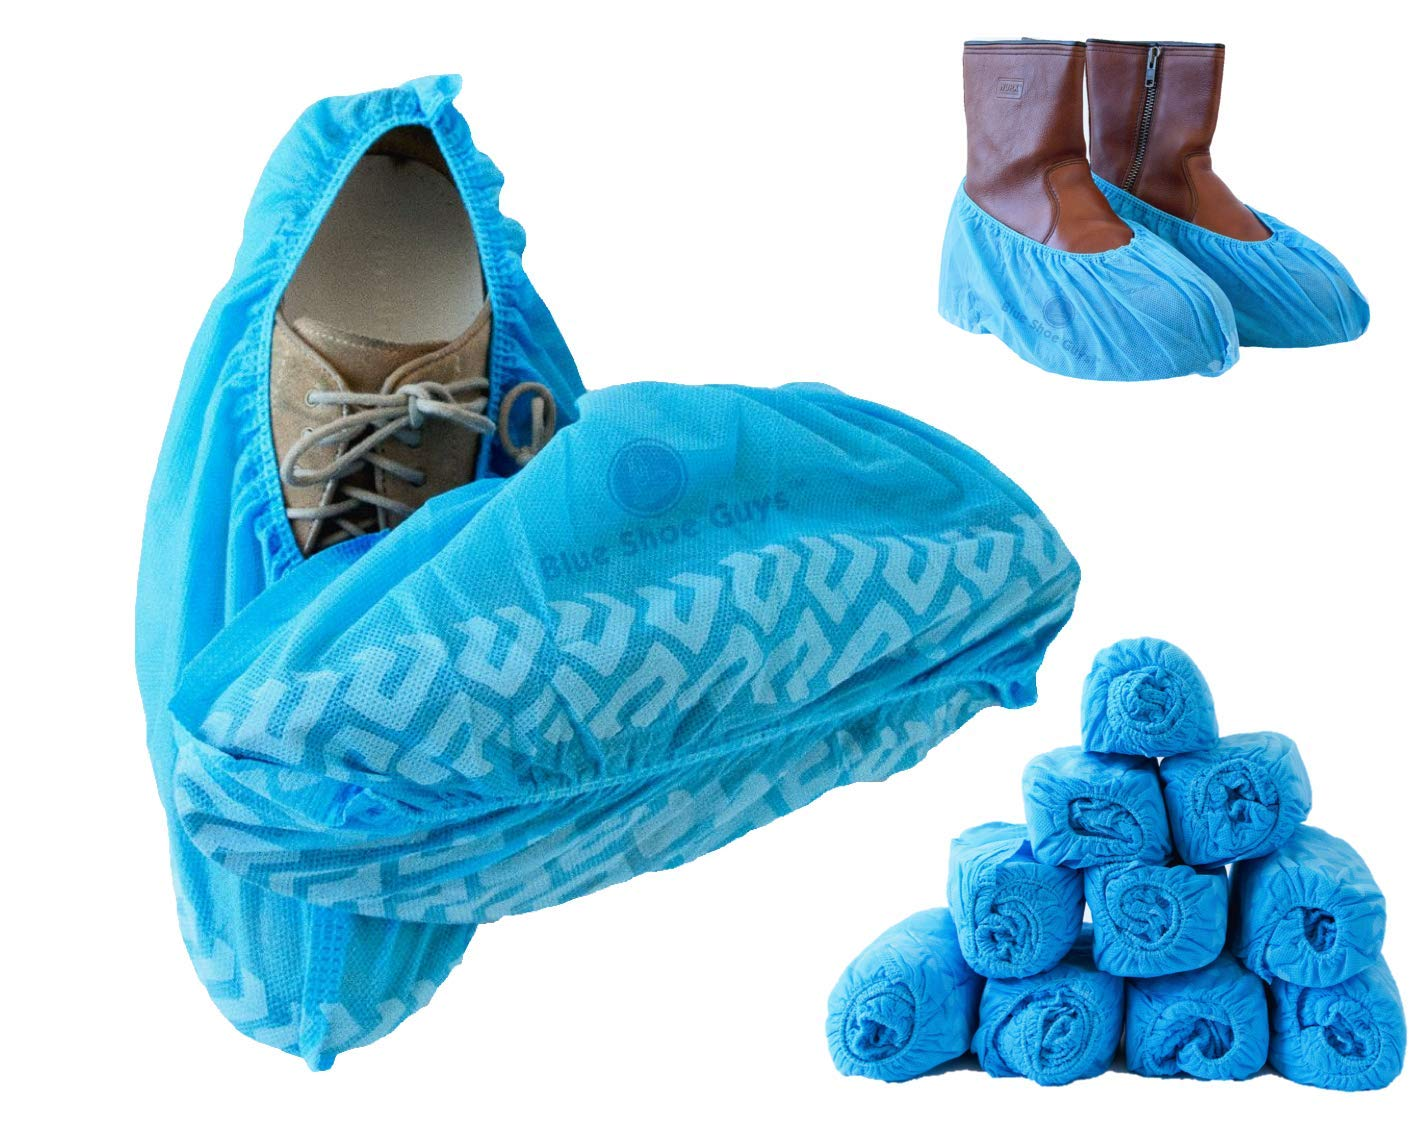 Blue Shoe Guys Premium Boot & Shoe Covers Disposable, 100 Pack   Non Slip Foot Booties, Water Resistant, Indoor/Outdoor, Protects Carpets/Floors   Large Size Fits Most (upto US Men 11.5 Women 12.5) by Blue Shoe Guys